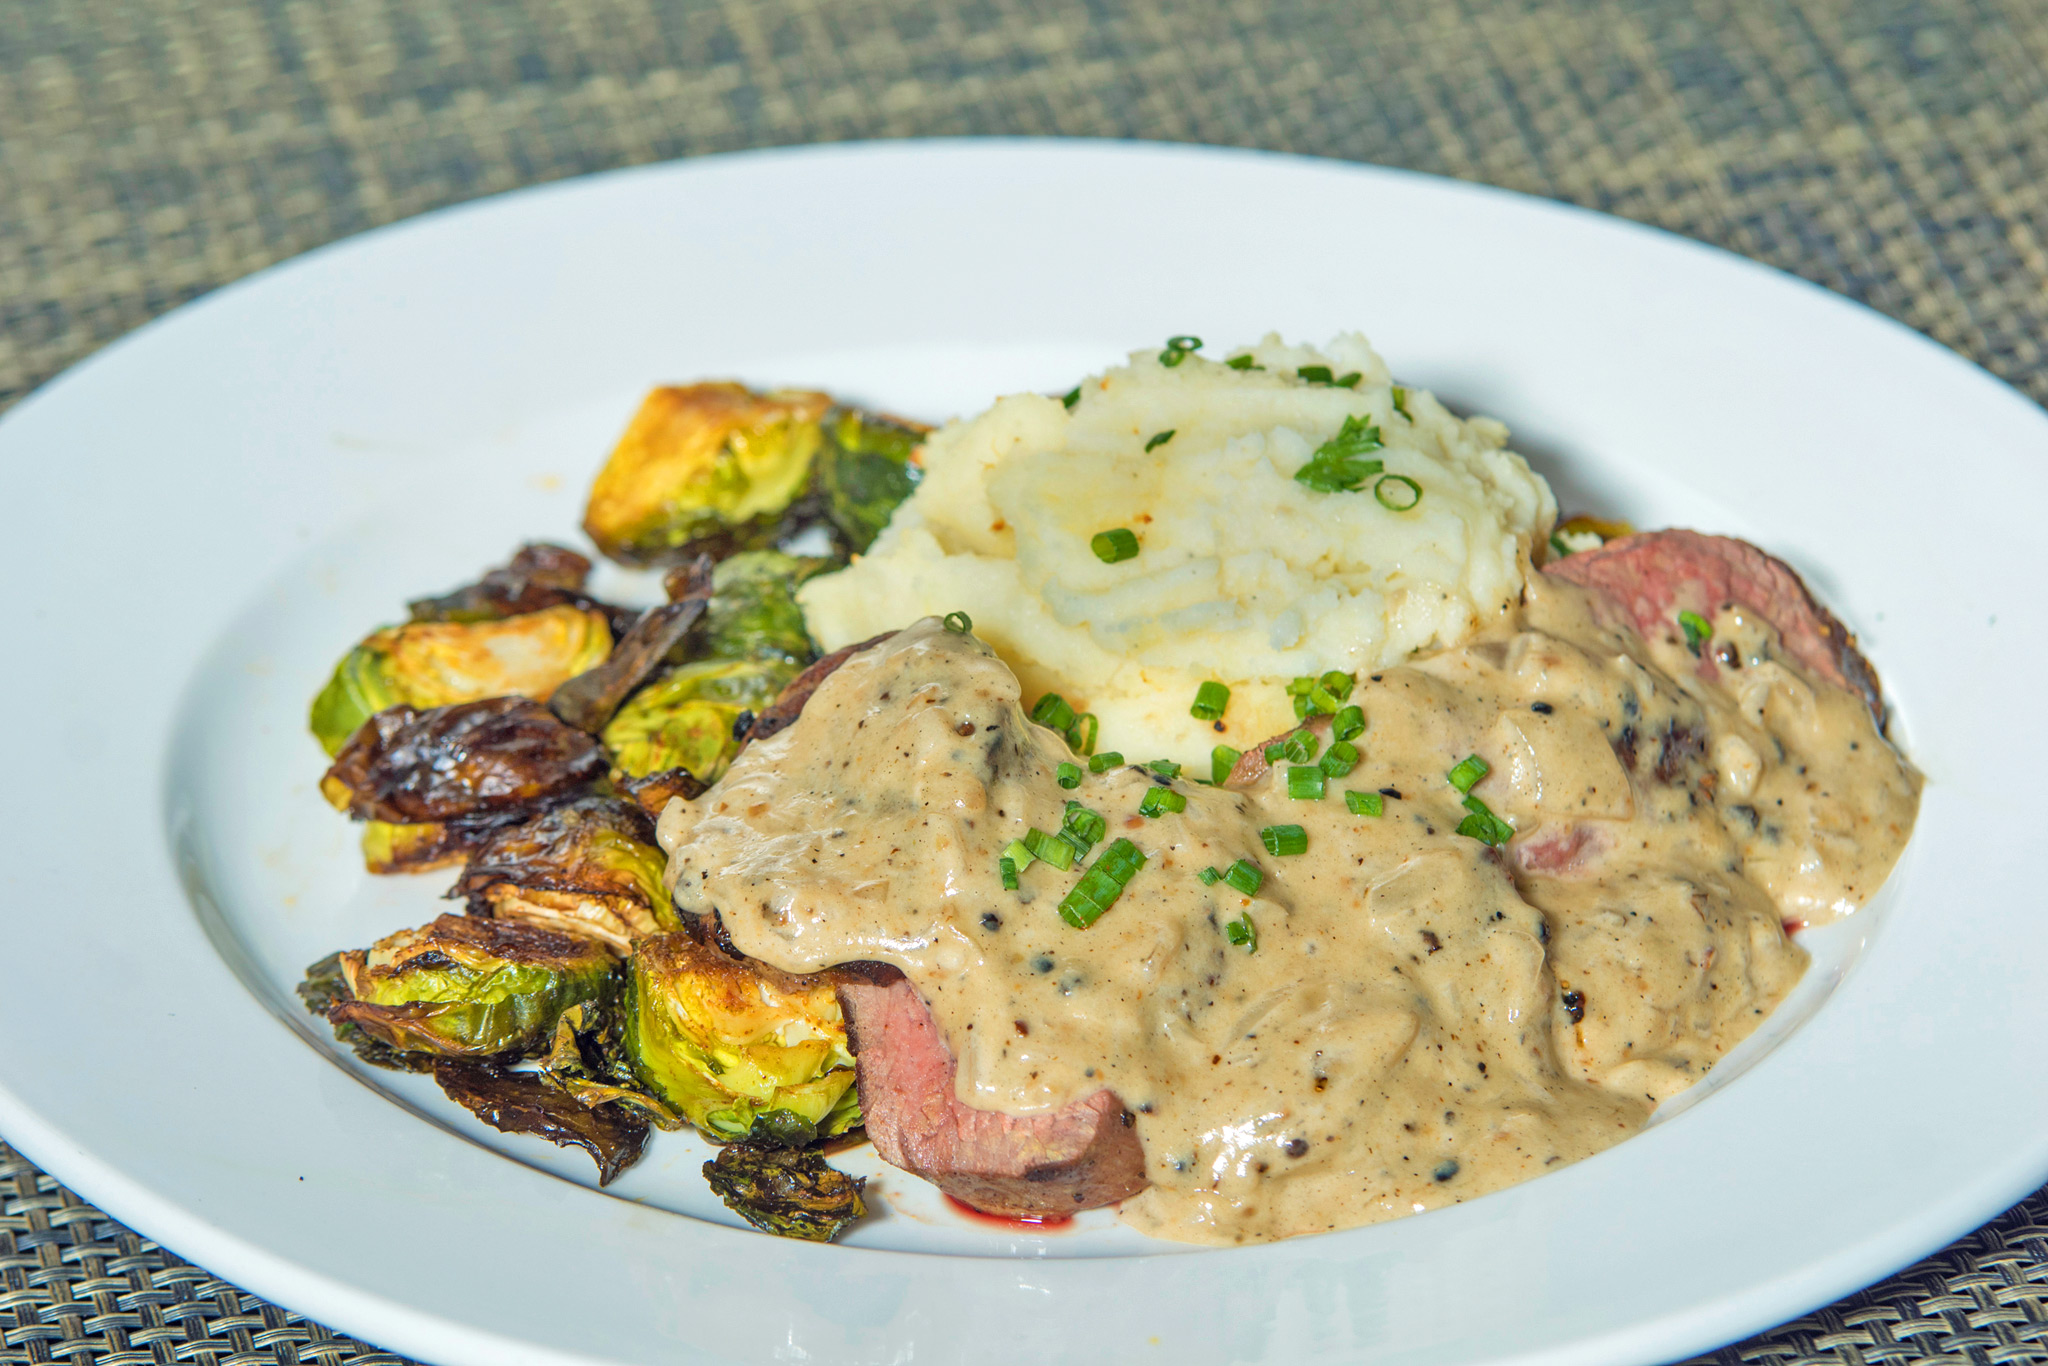 Shoulder Tender Steak - peppercorn sauce, buttermilk smashed potatoes, roast brussels sprouts